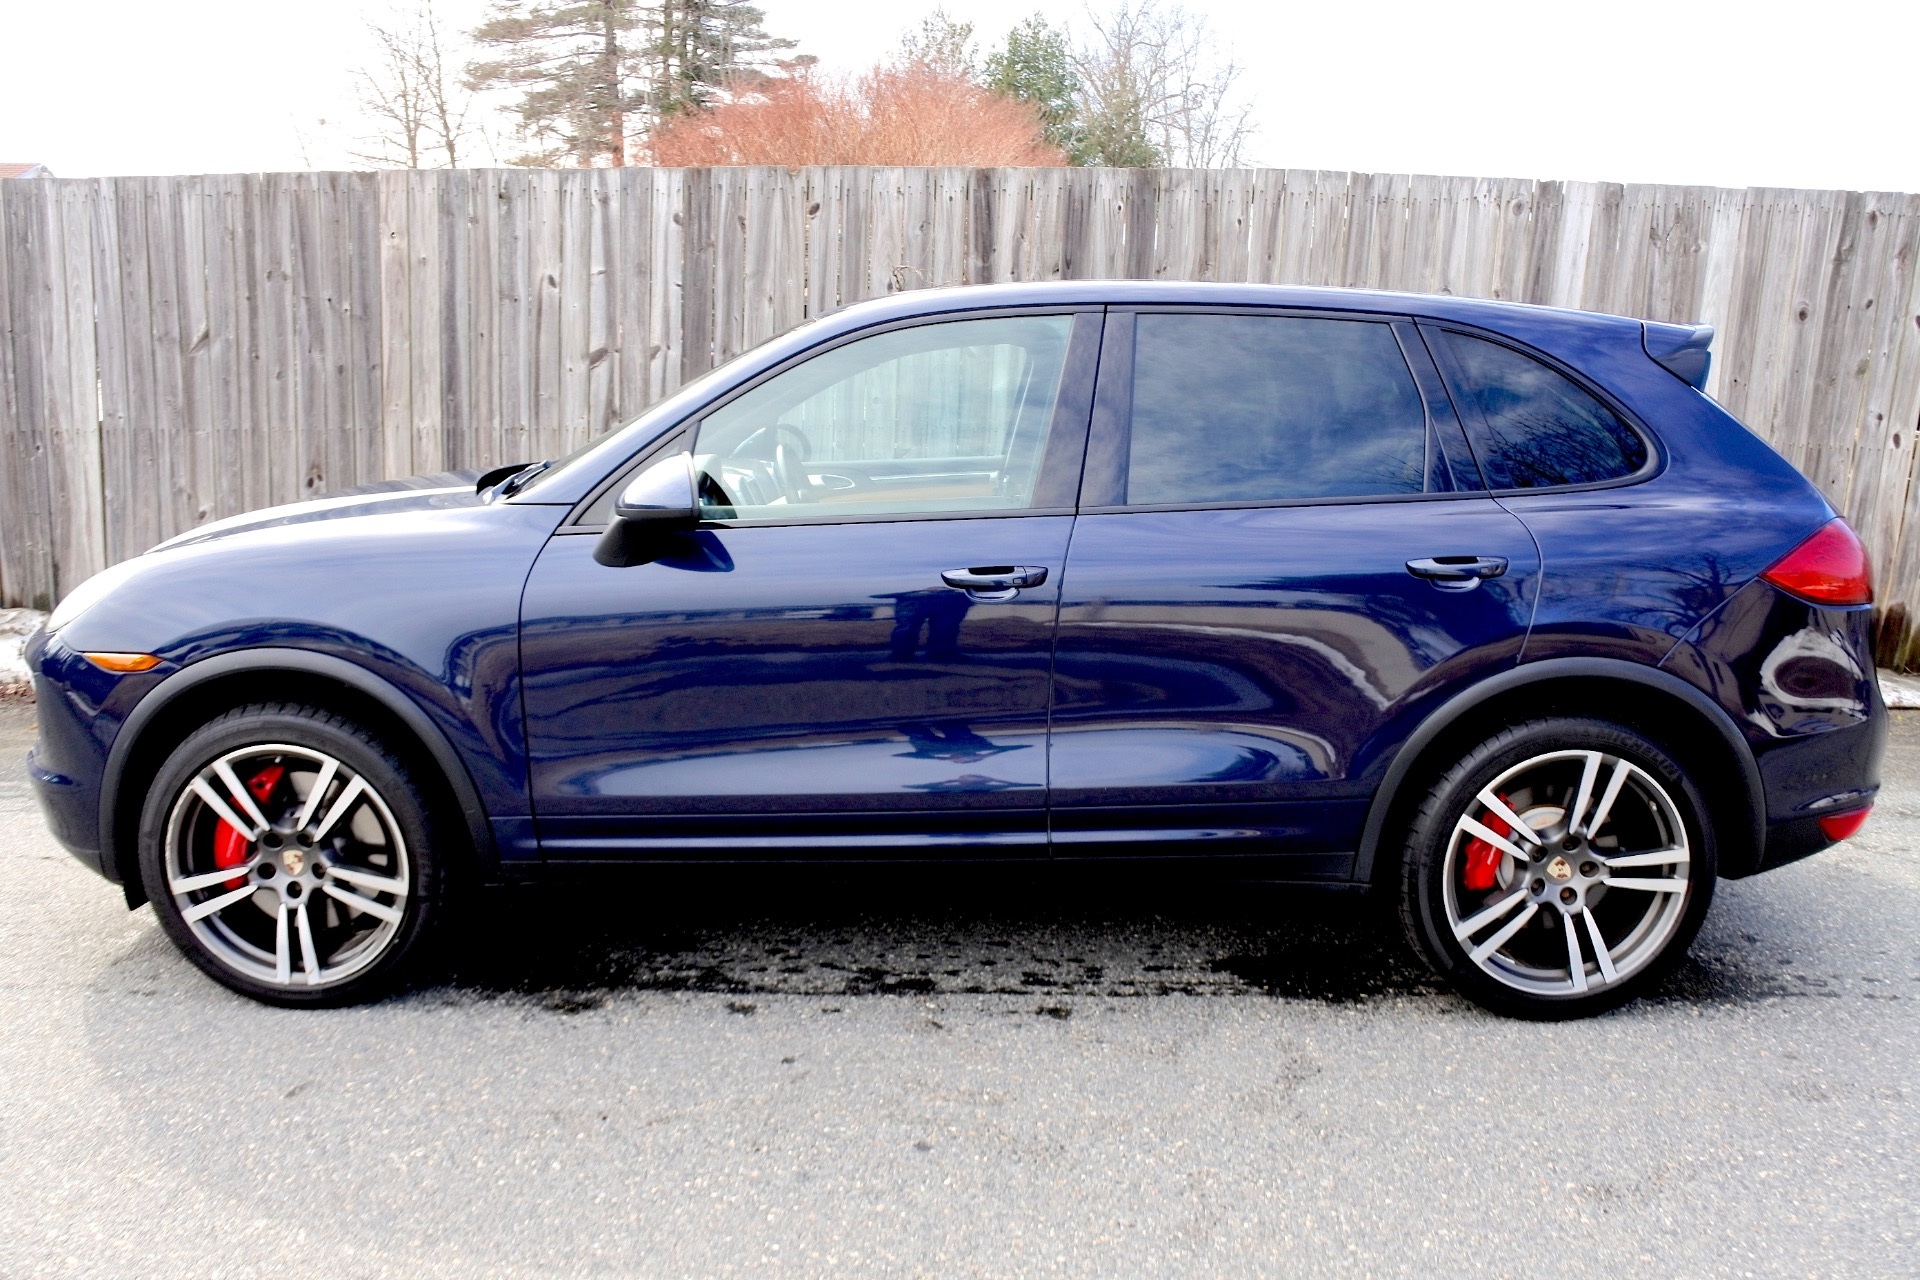 Used 2012 Porsche Cayenne Turbo AWD Used 2012 Porsche Cayenne Turbo AWD for sale  at Metro West Motorcars LLC in Shrewsbury MA 2